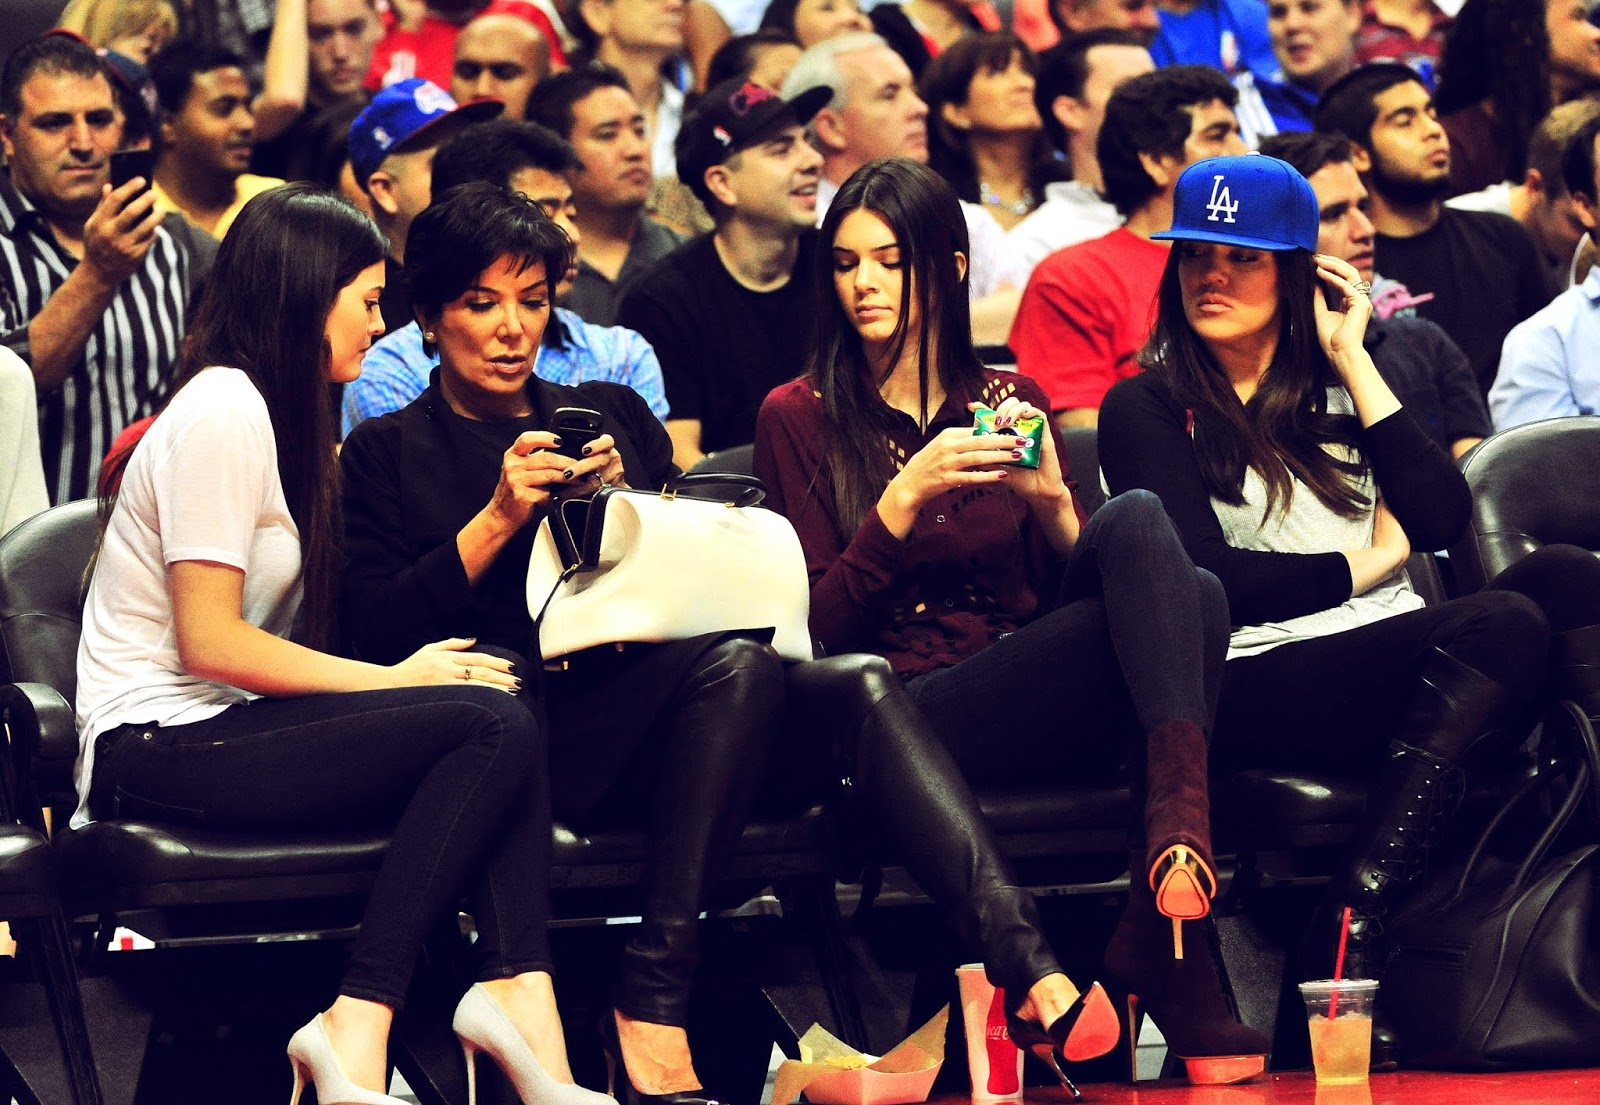 19 - Watching The Los Angeles Clippers Game on October 17, 2012